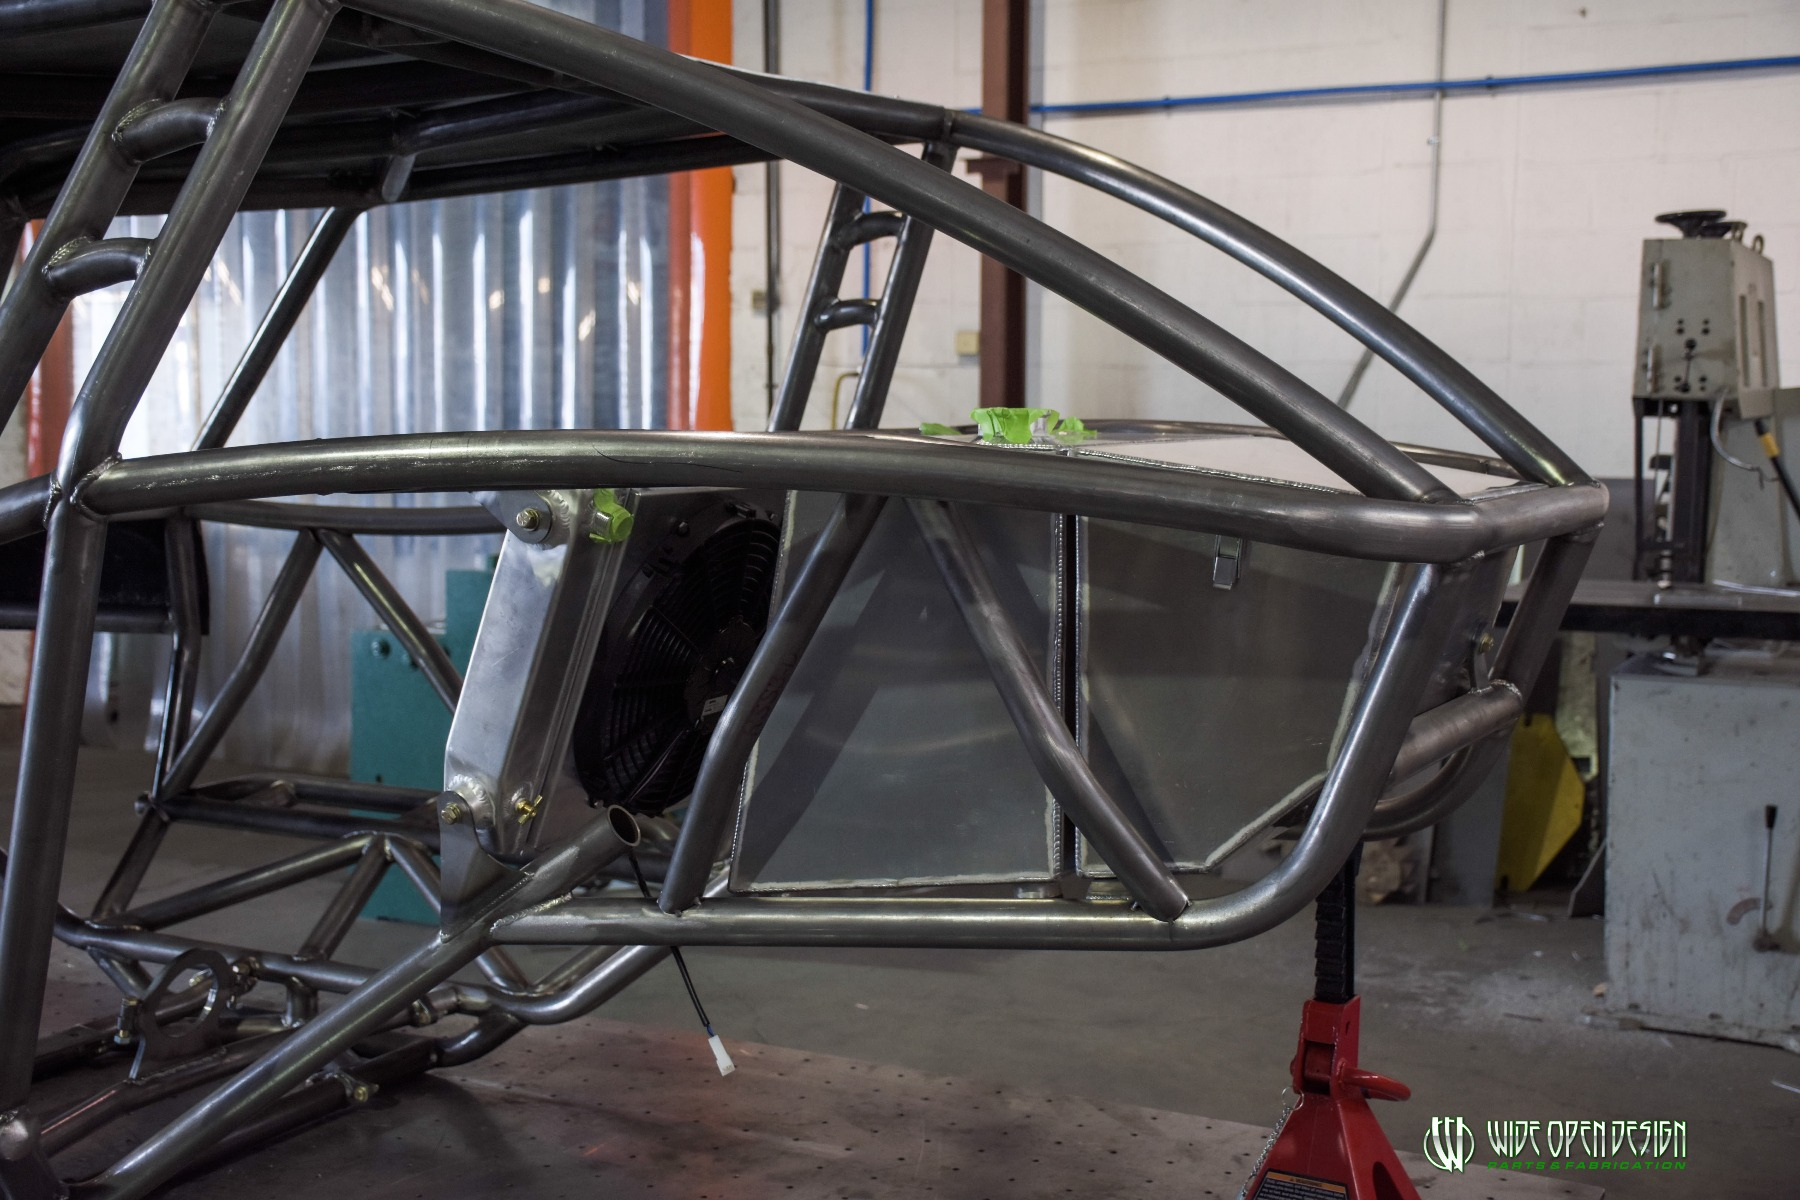 Jeep Rock Crawler Chassis with Jeep Hood Image 6